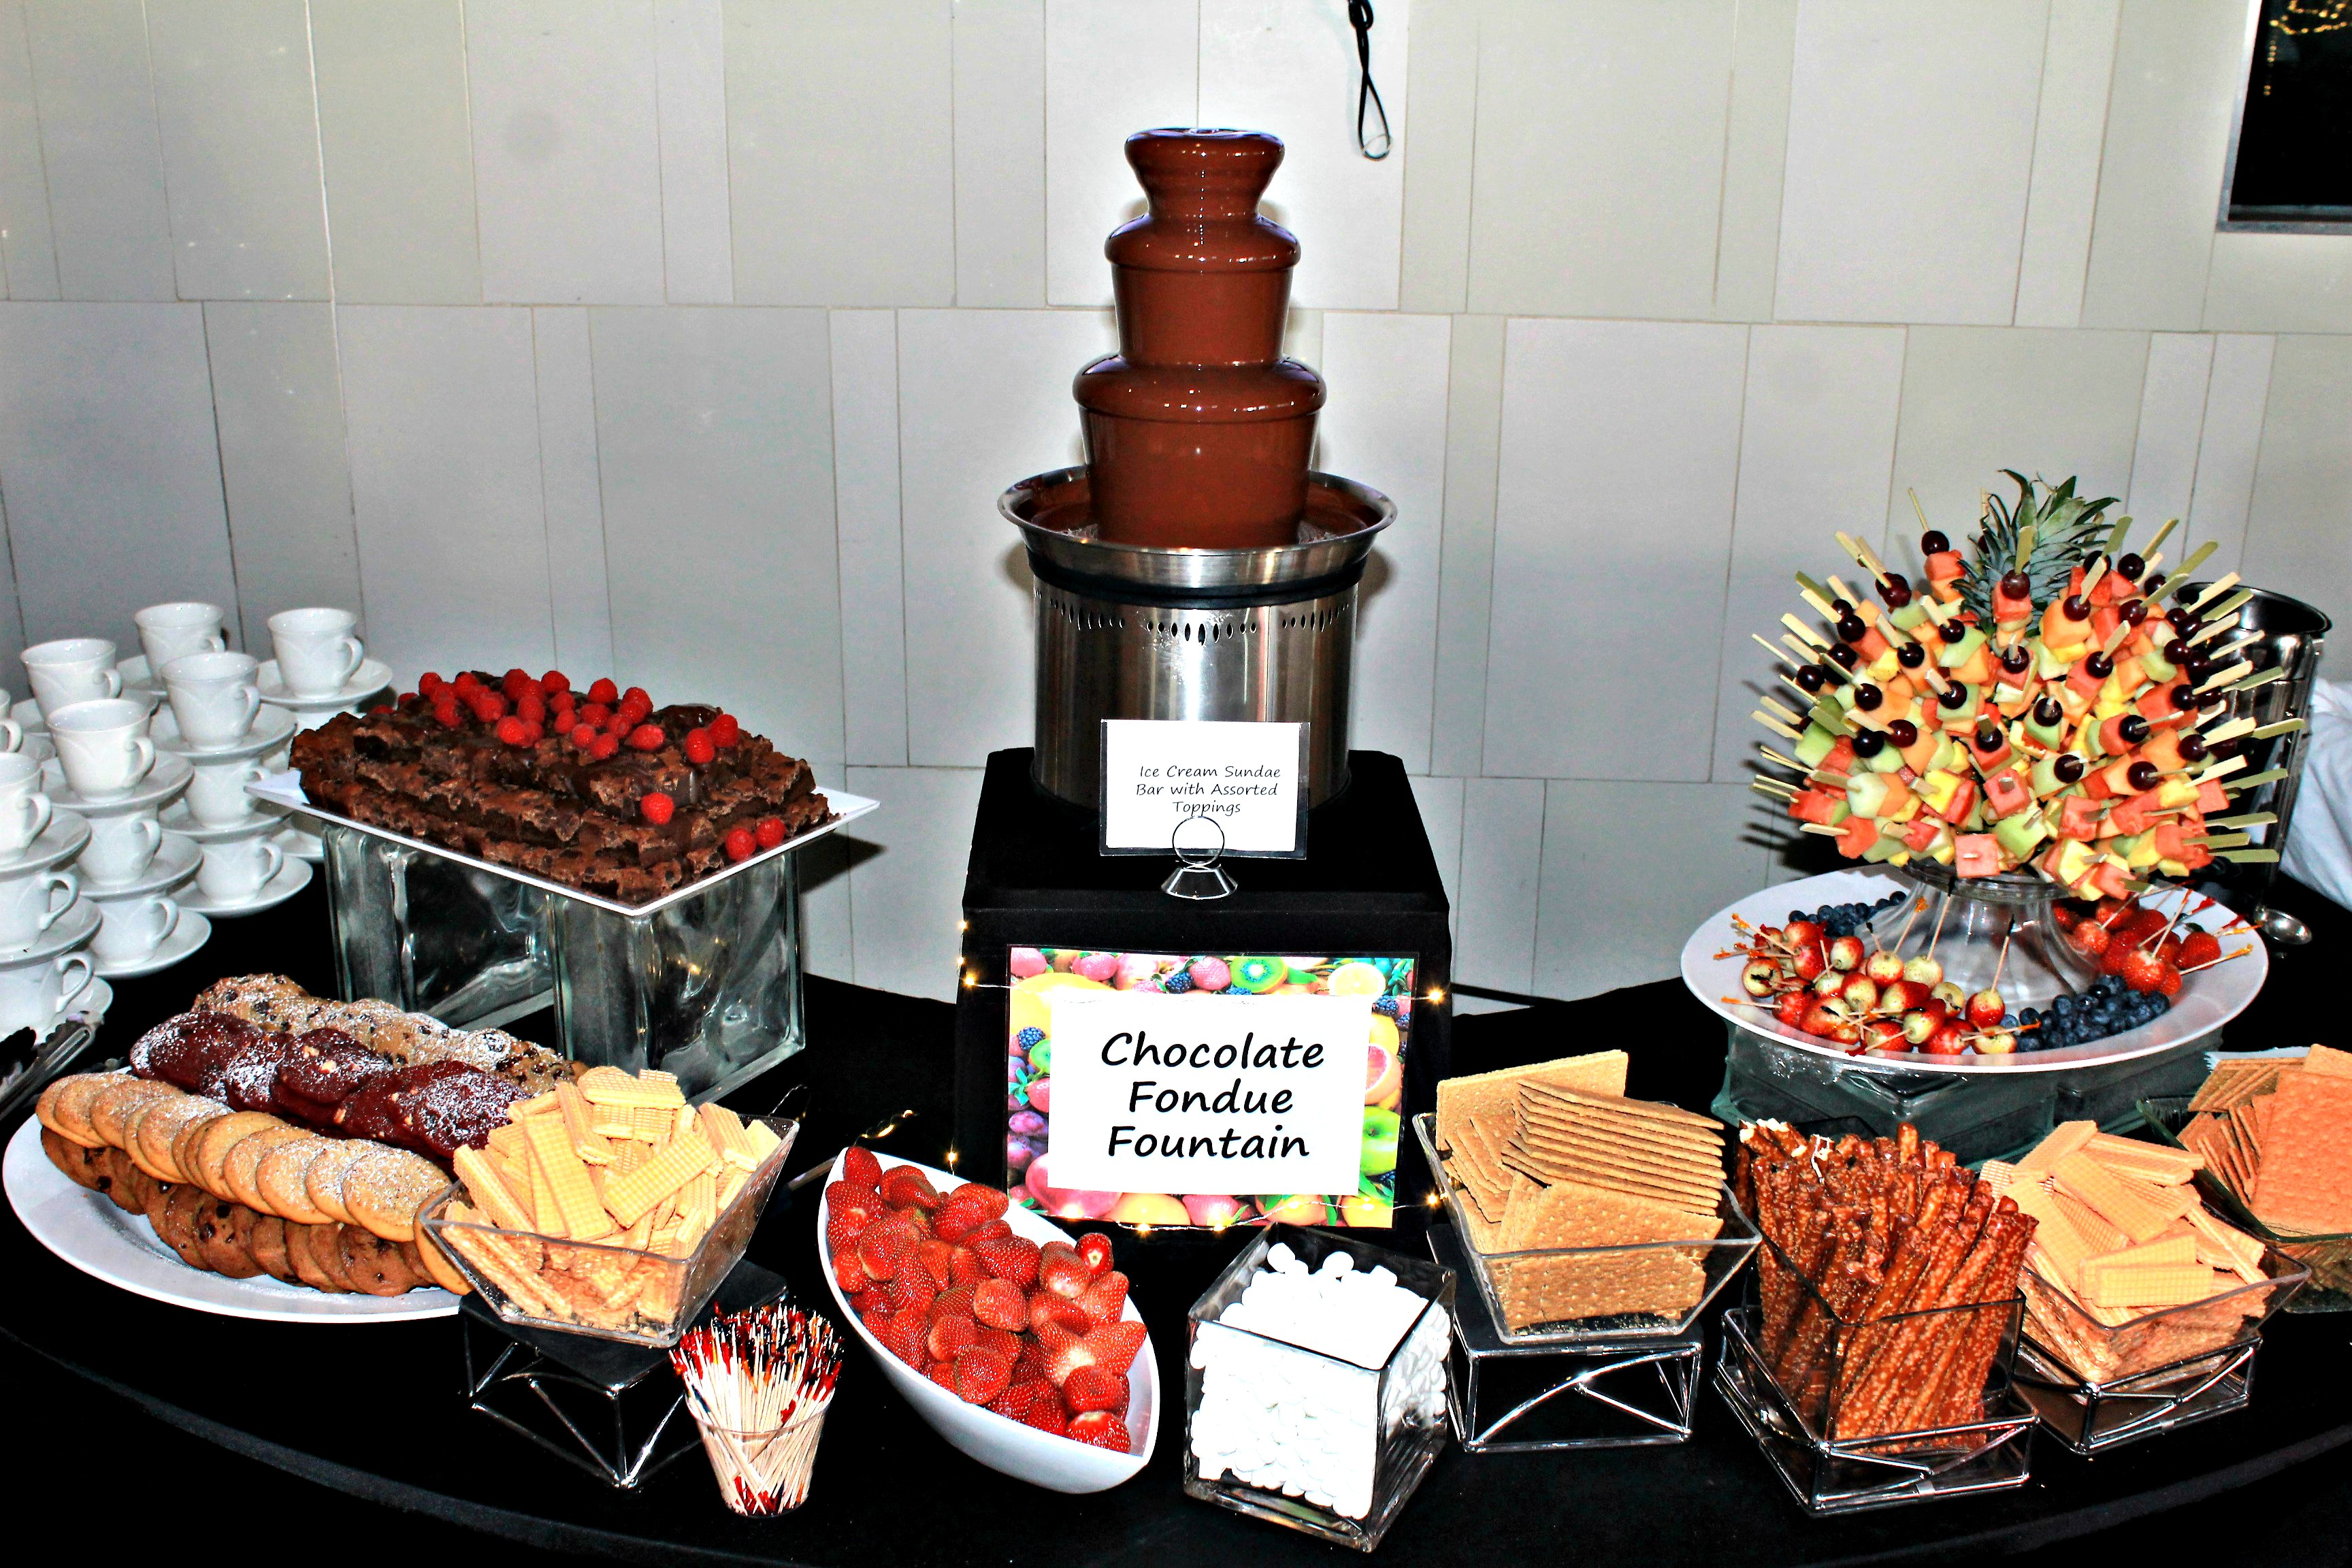 Chocolate fountain with fruit